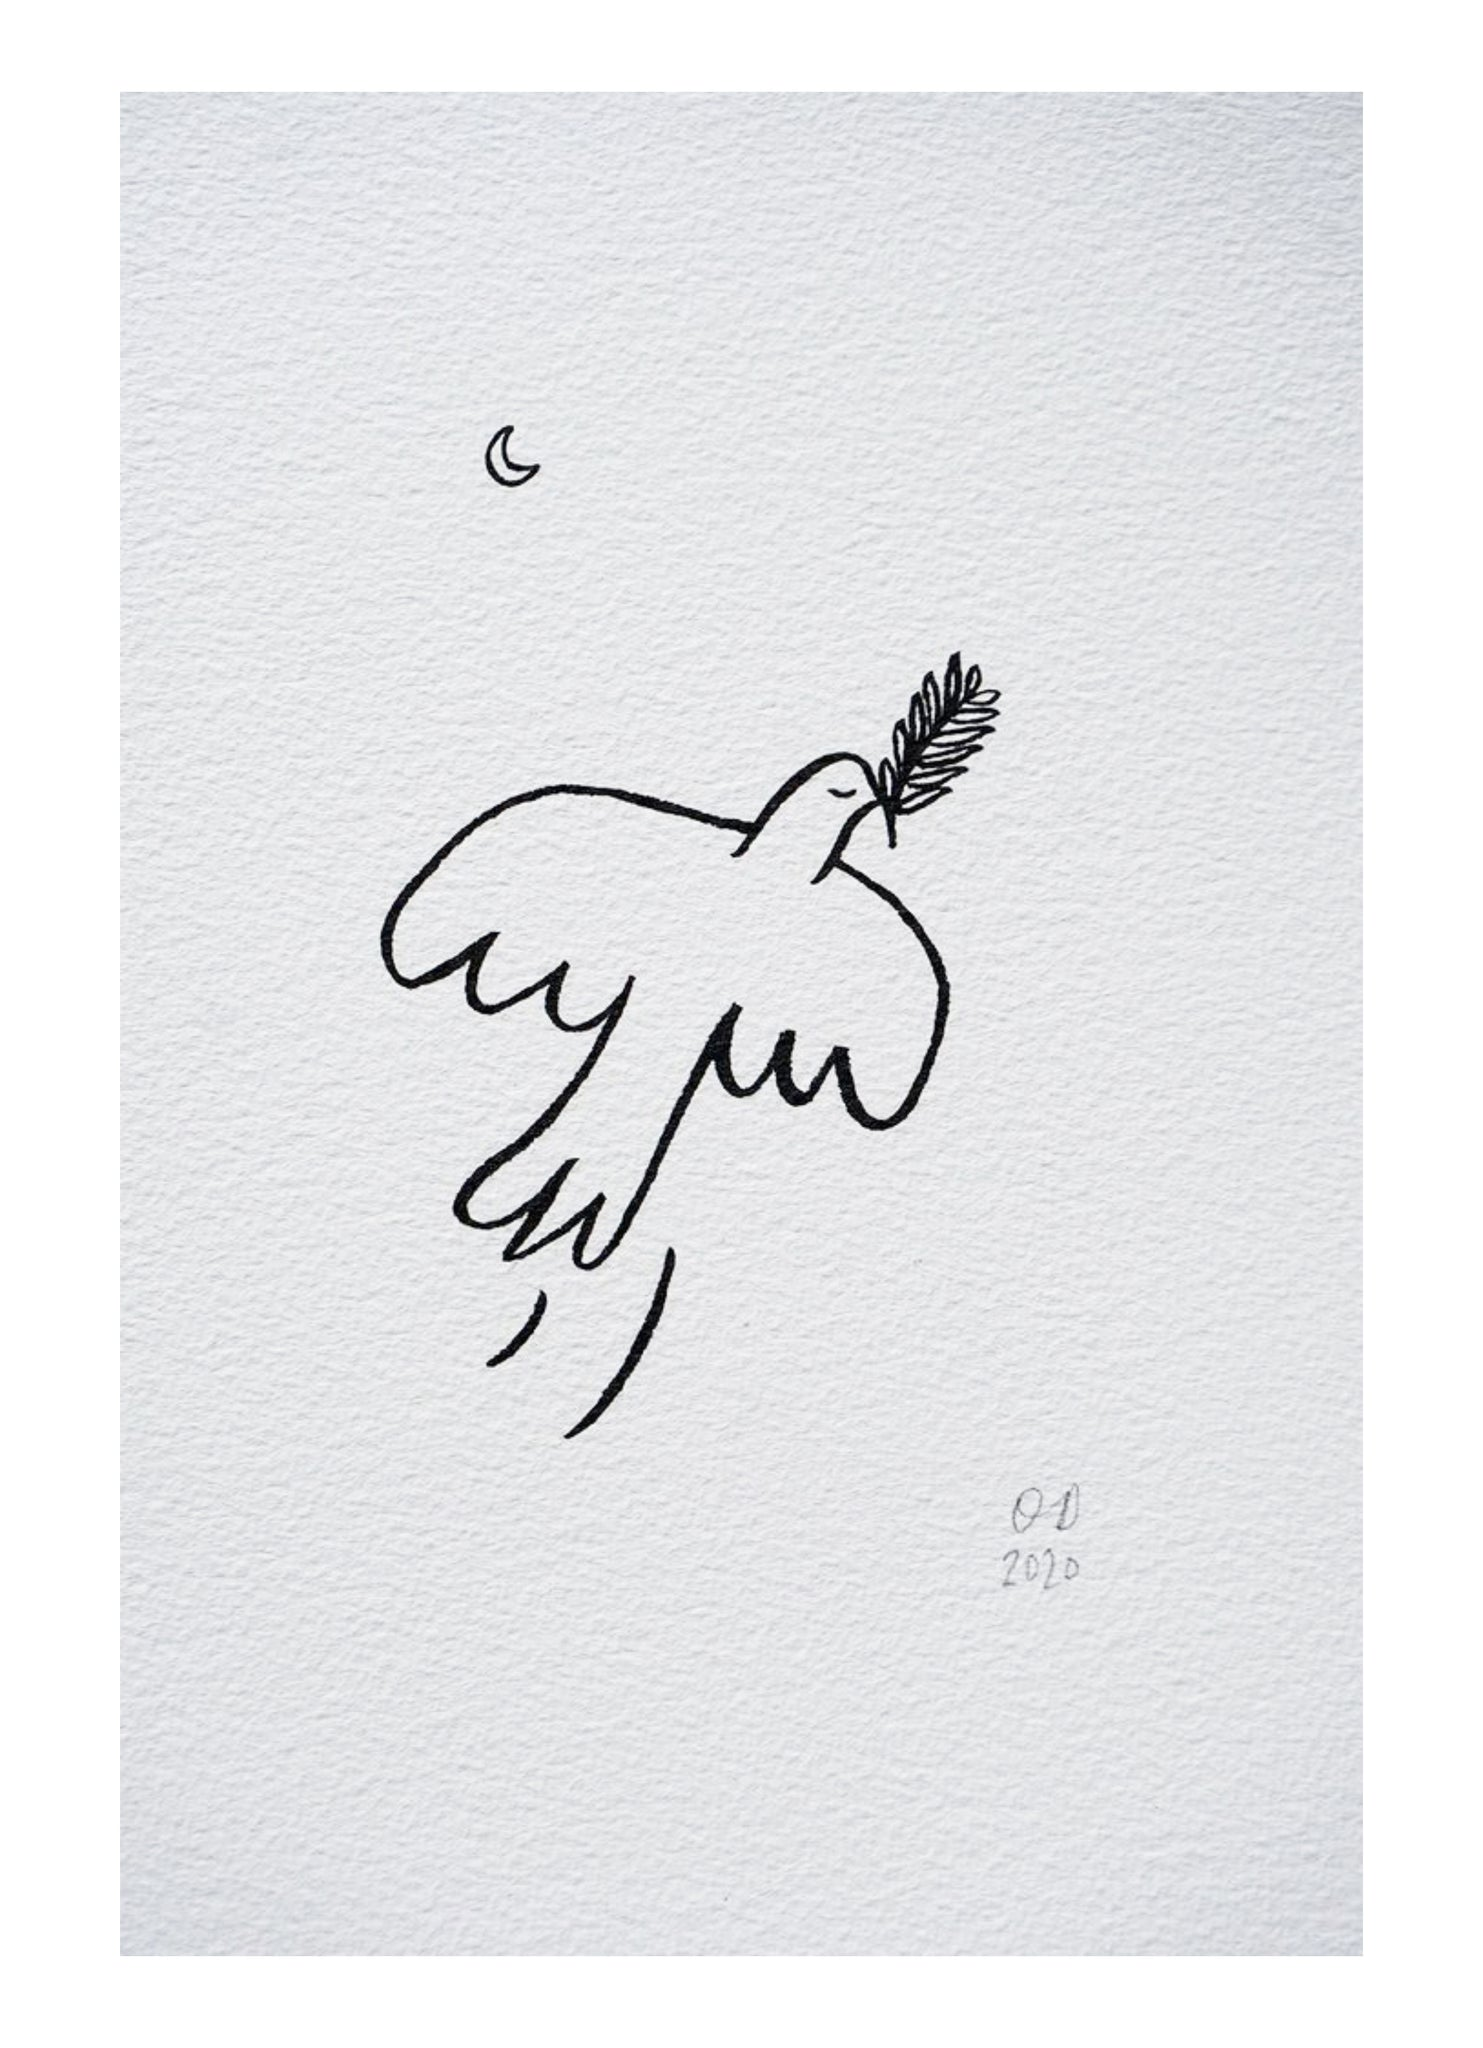 OLIVIA DOMINGOS a4 bird and moon hand drawing